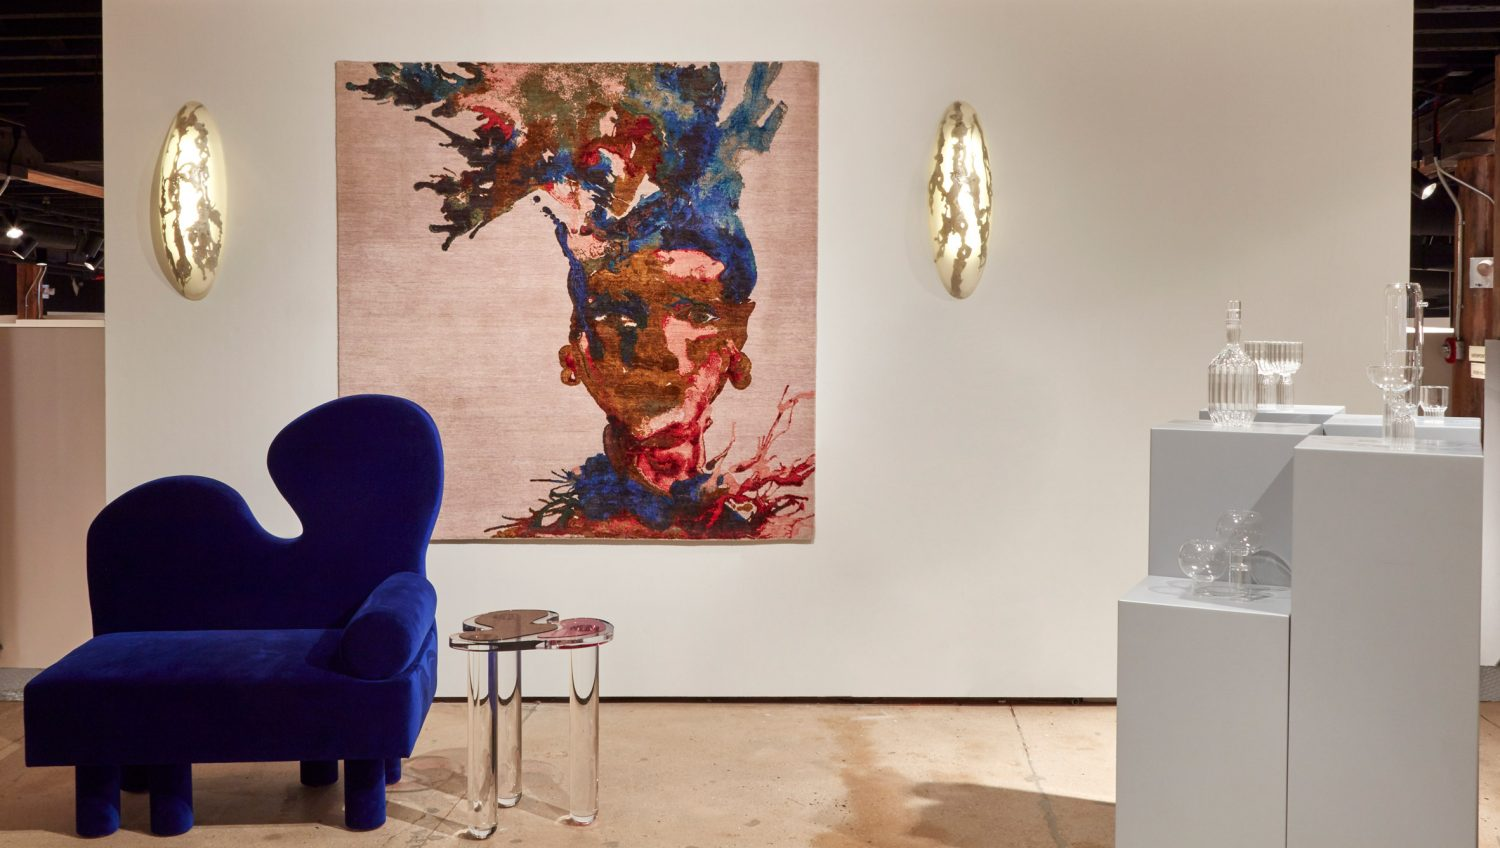 Top installations to see right now at NYCxDesign 2019 top installations to see right now at nycxdesign 2019 TOP INSTALLATIONS TO SEE RIGHT NOW AT NYCXDESIGN 2019 deeper than text female design council exhibit 1st dibs new york city